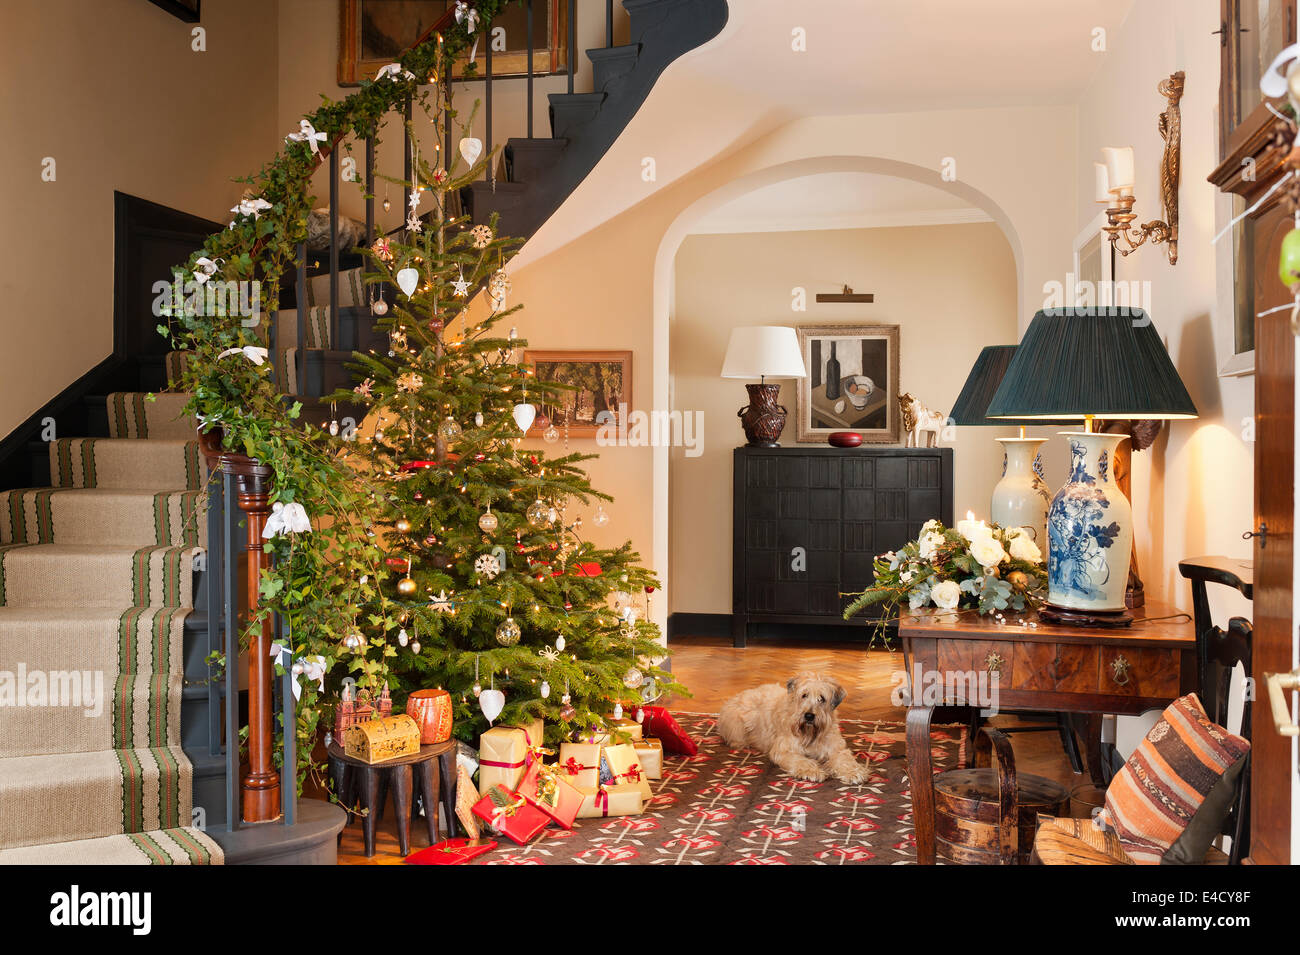 Christmas tree in entrance hall with early 20th century kilim the christmas tree in entrance hall with early 20th century kilim the hall table is french chestnut and the table lamps are antique aloadofball Choice Image